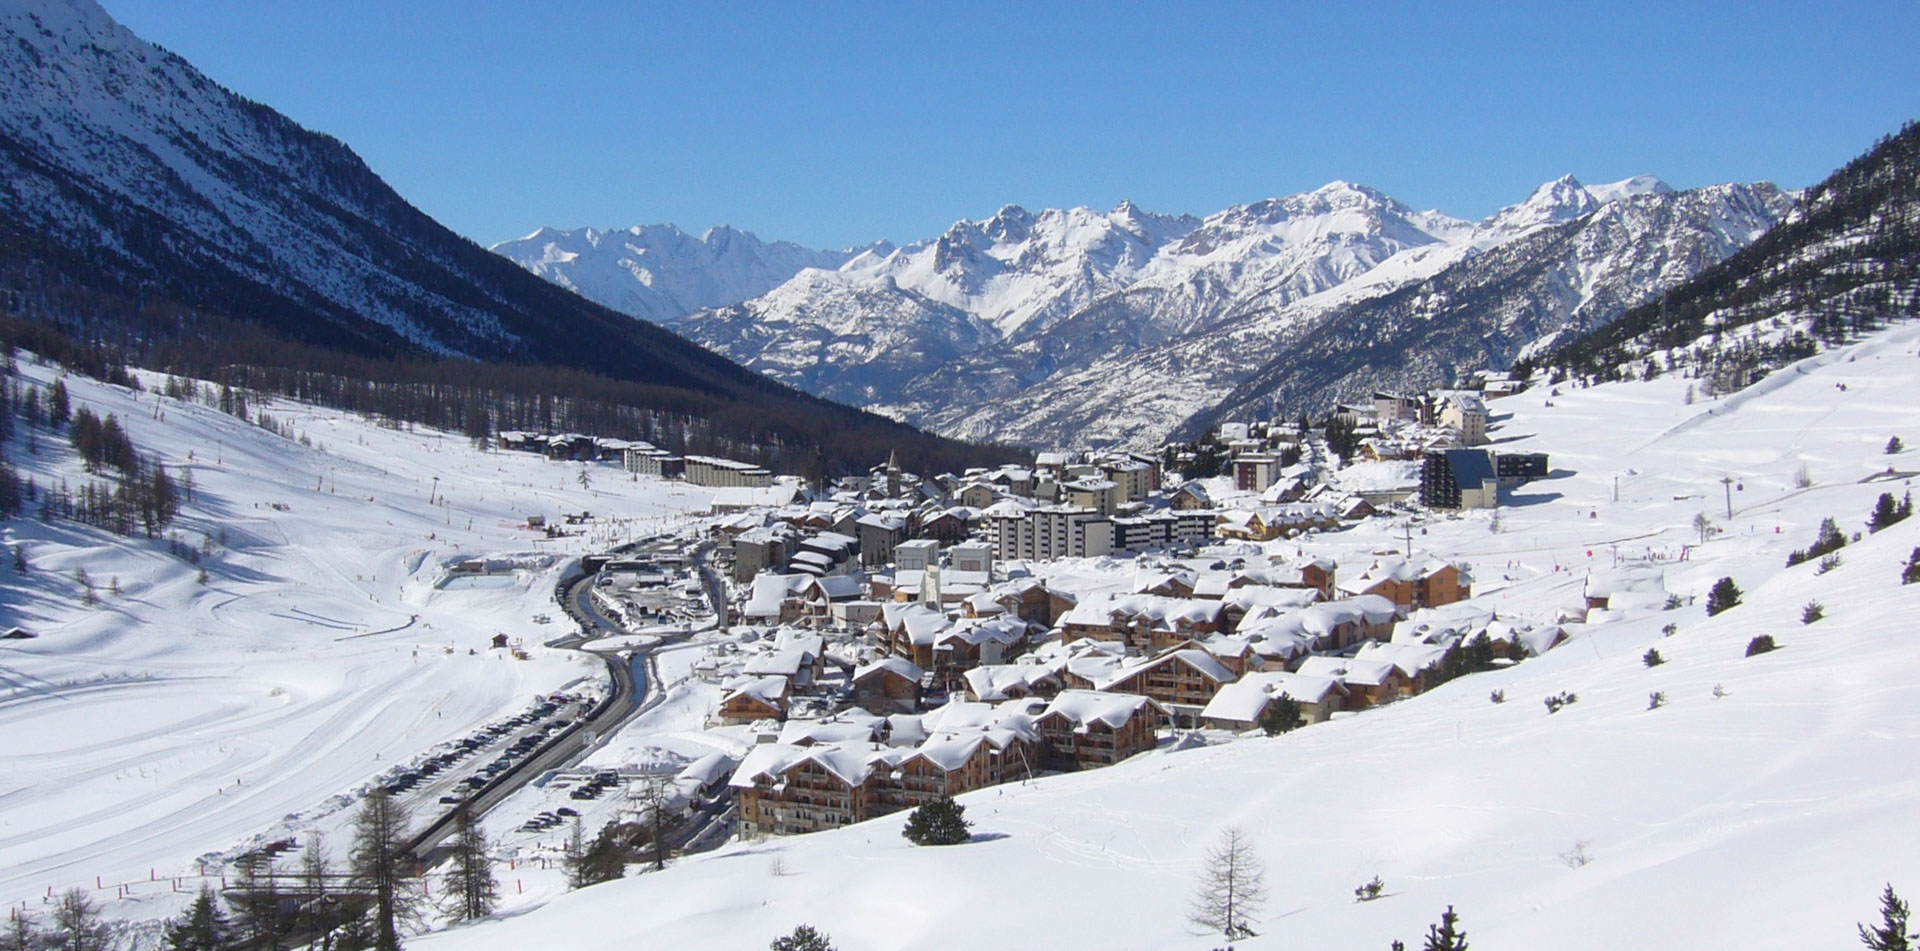 Snow covered chalets in the village of Montgenevre, surrounded by mountains and ski slopes